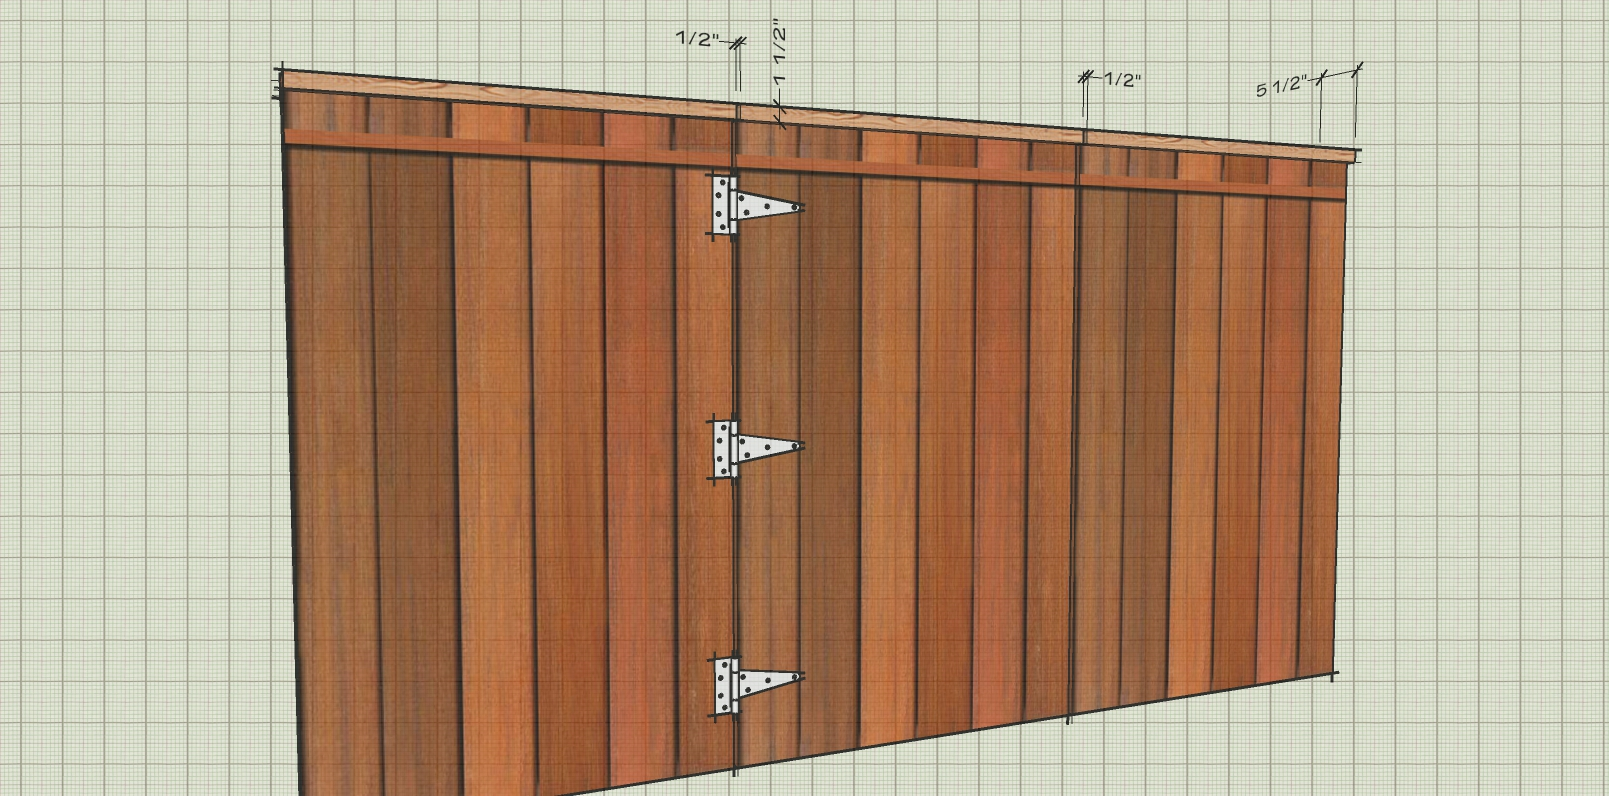 How to build a gate when fence has a 2x6 cap-untitled-1.jpg